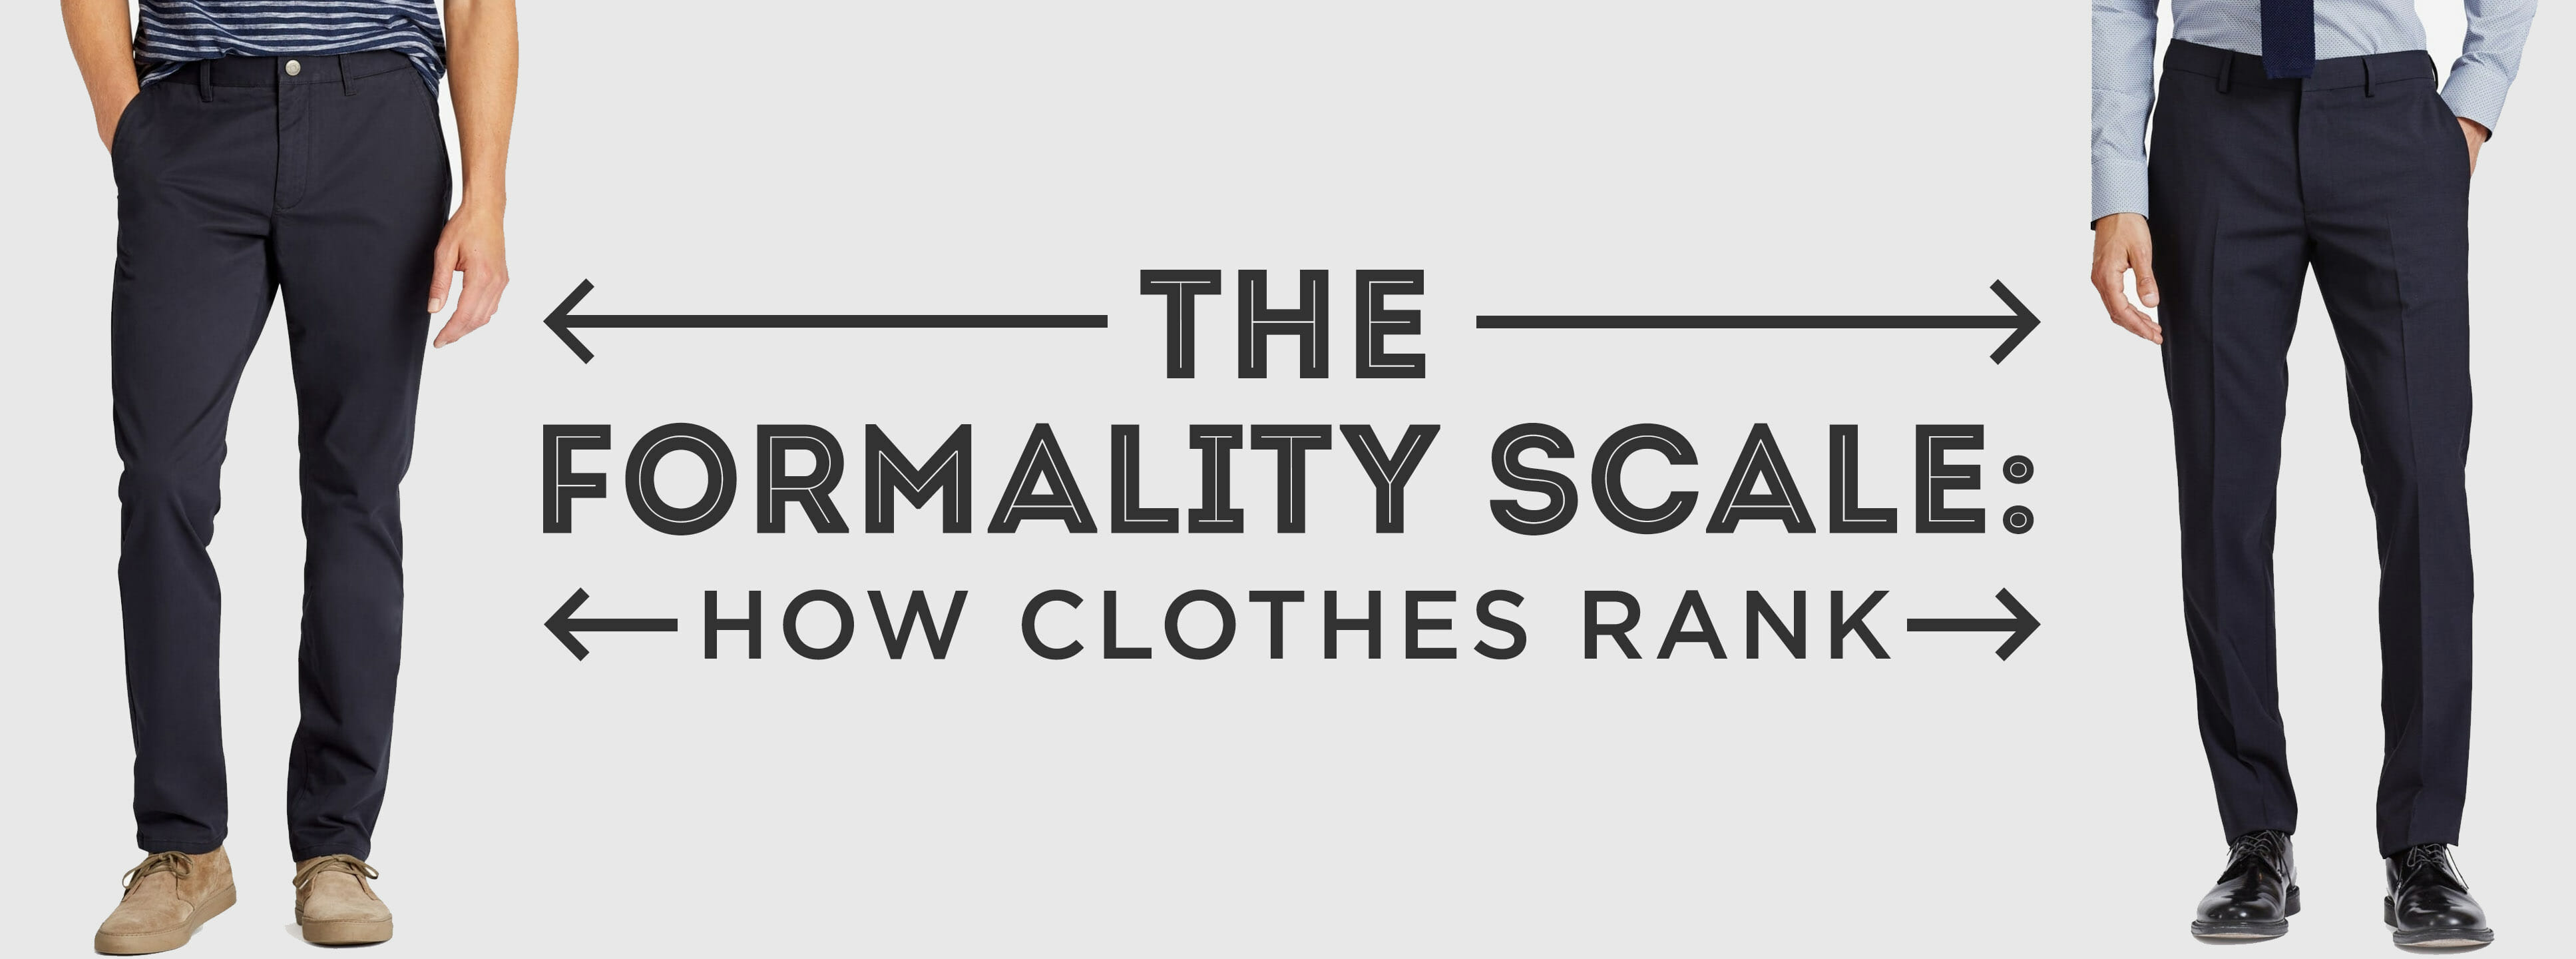 9517570b91dae The Formality Scale: How Clothes Rank From Formal To Informal ...